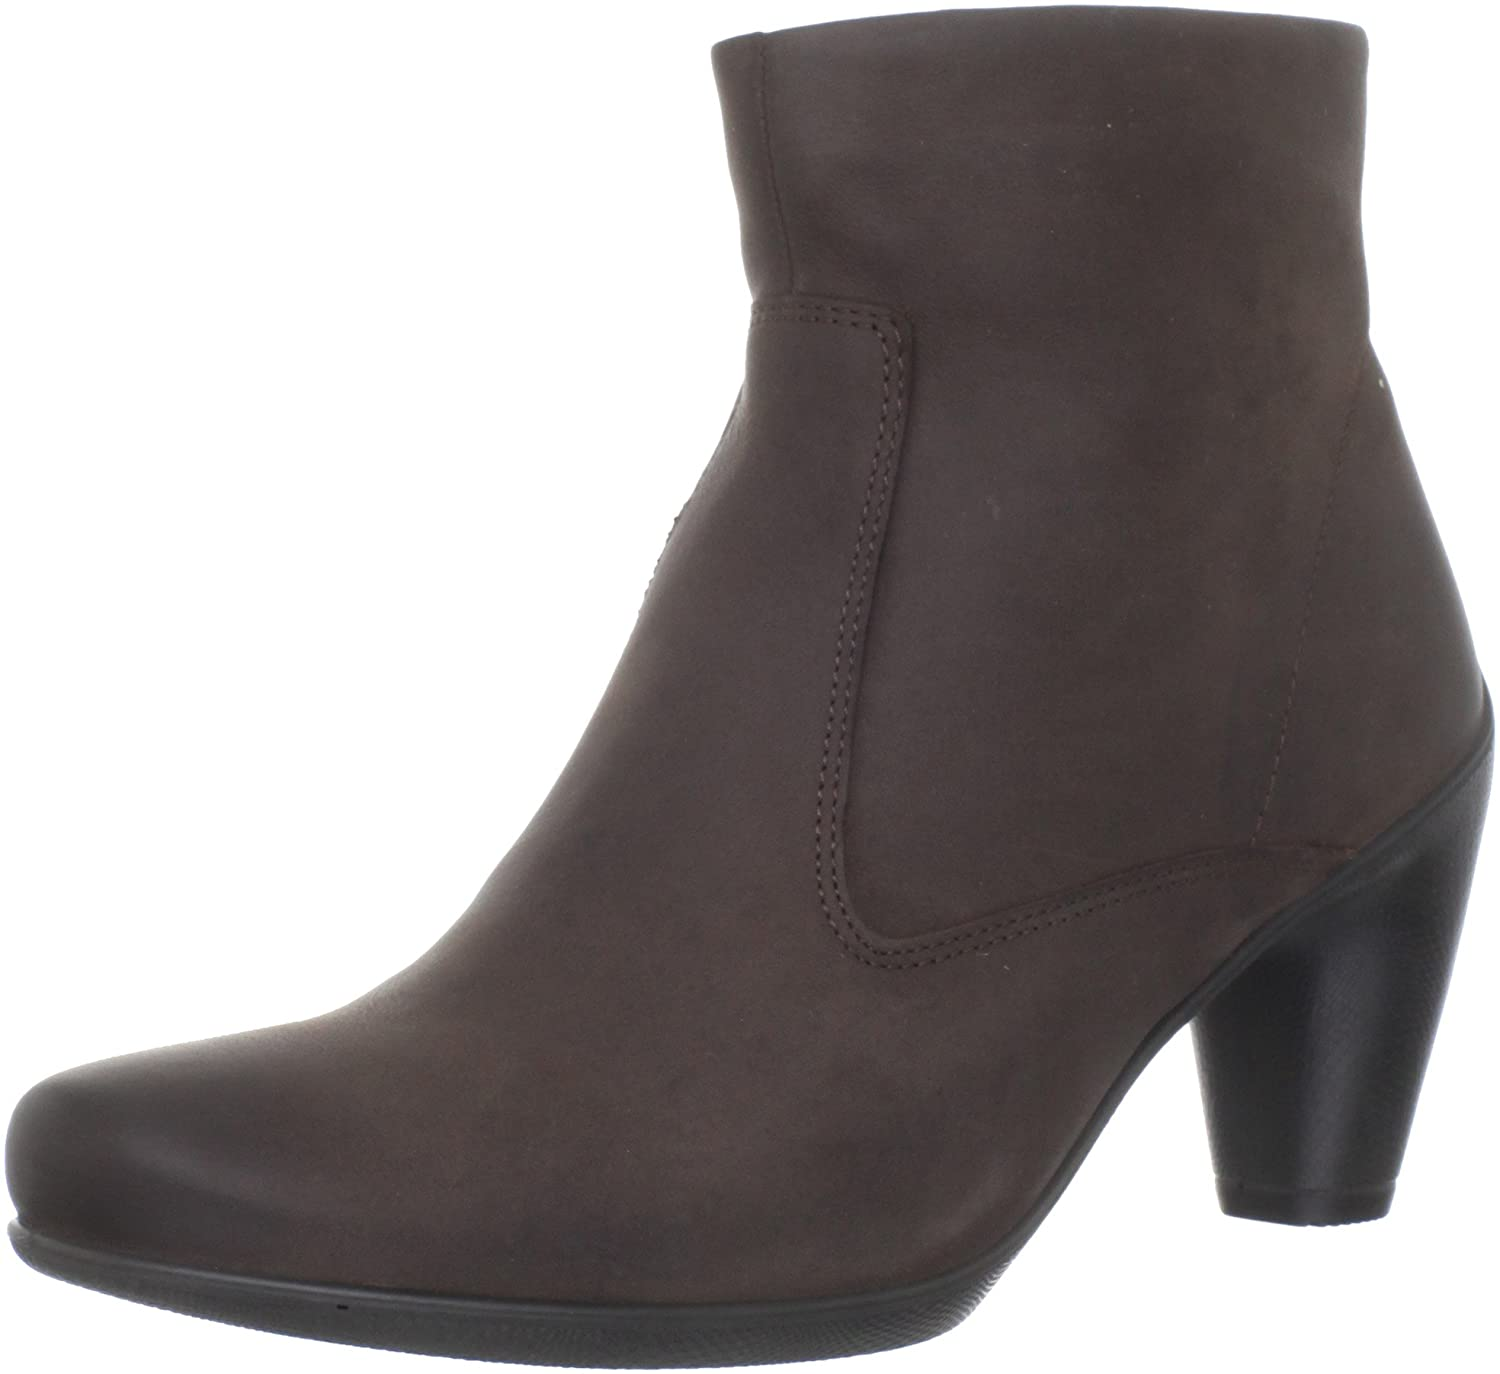 8846270459a3a Amazon.com | ECCO Women's Sculptured 65 mm Ankle Boot | Ankle & Bootie